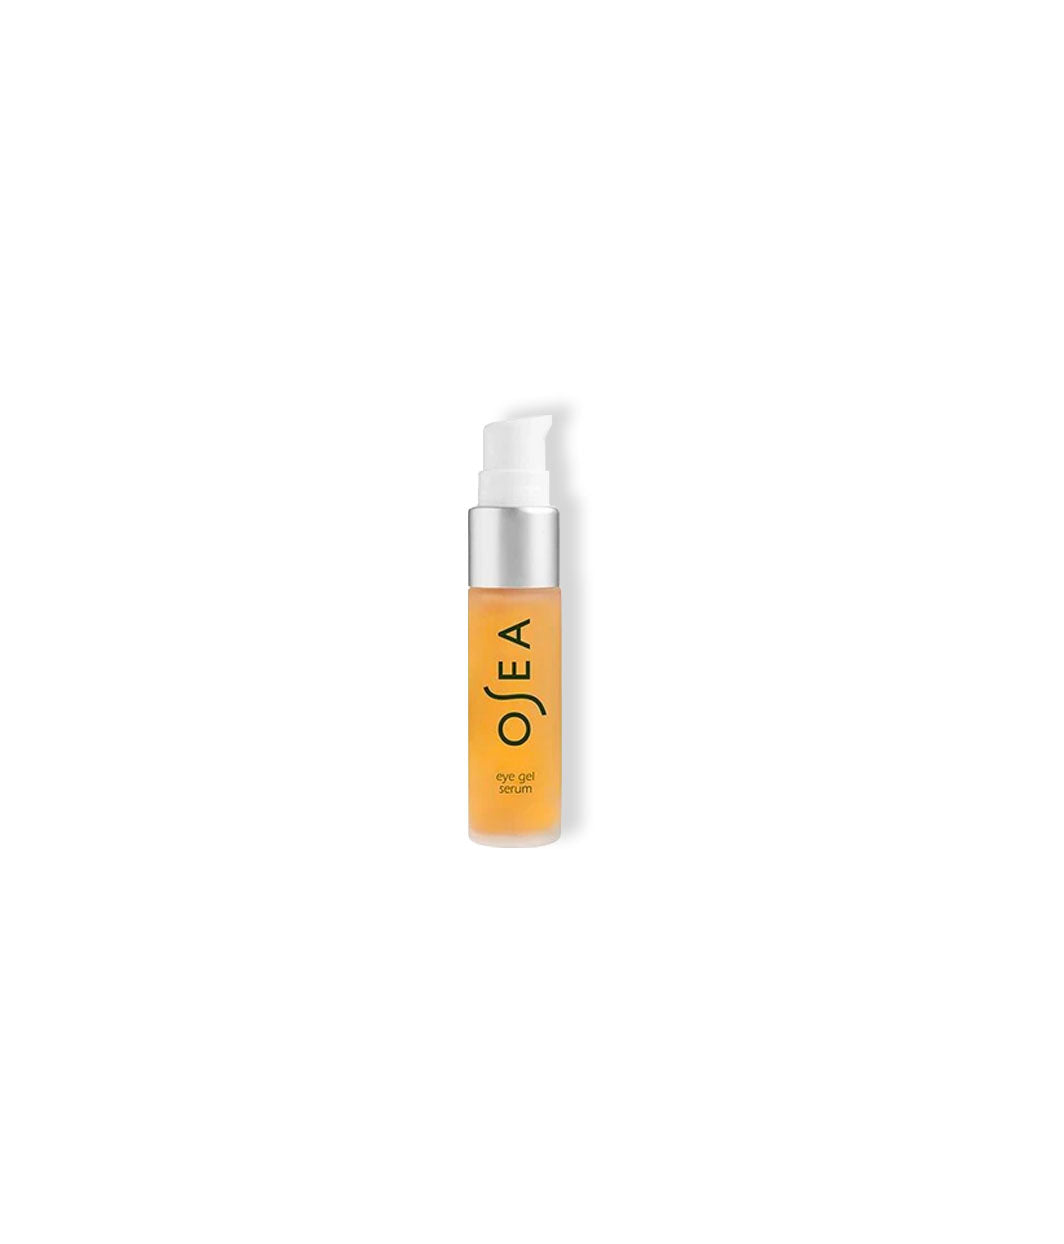 Eye Gel Serum